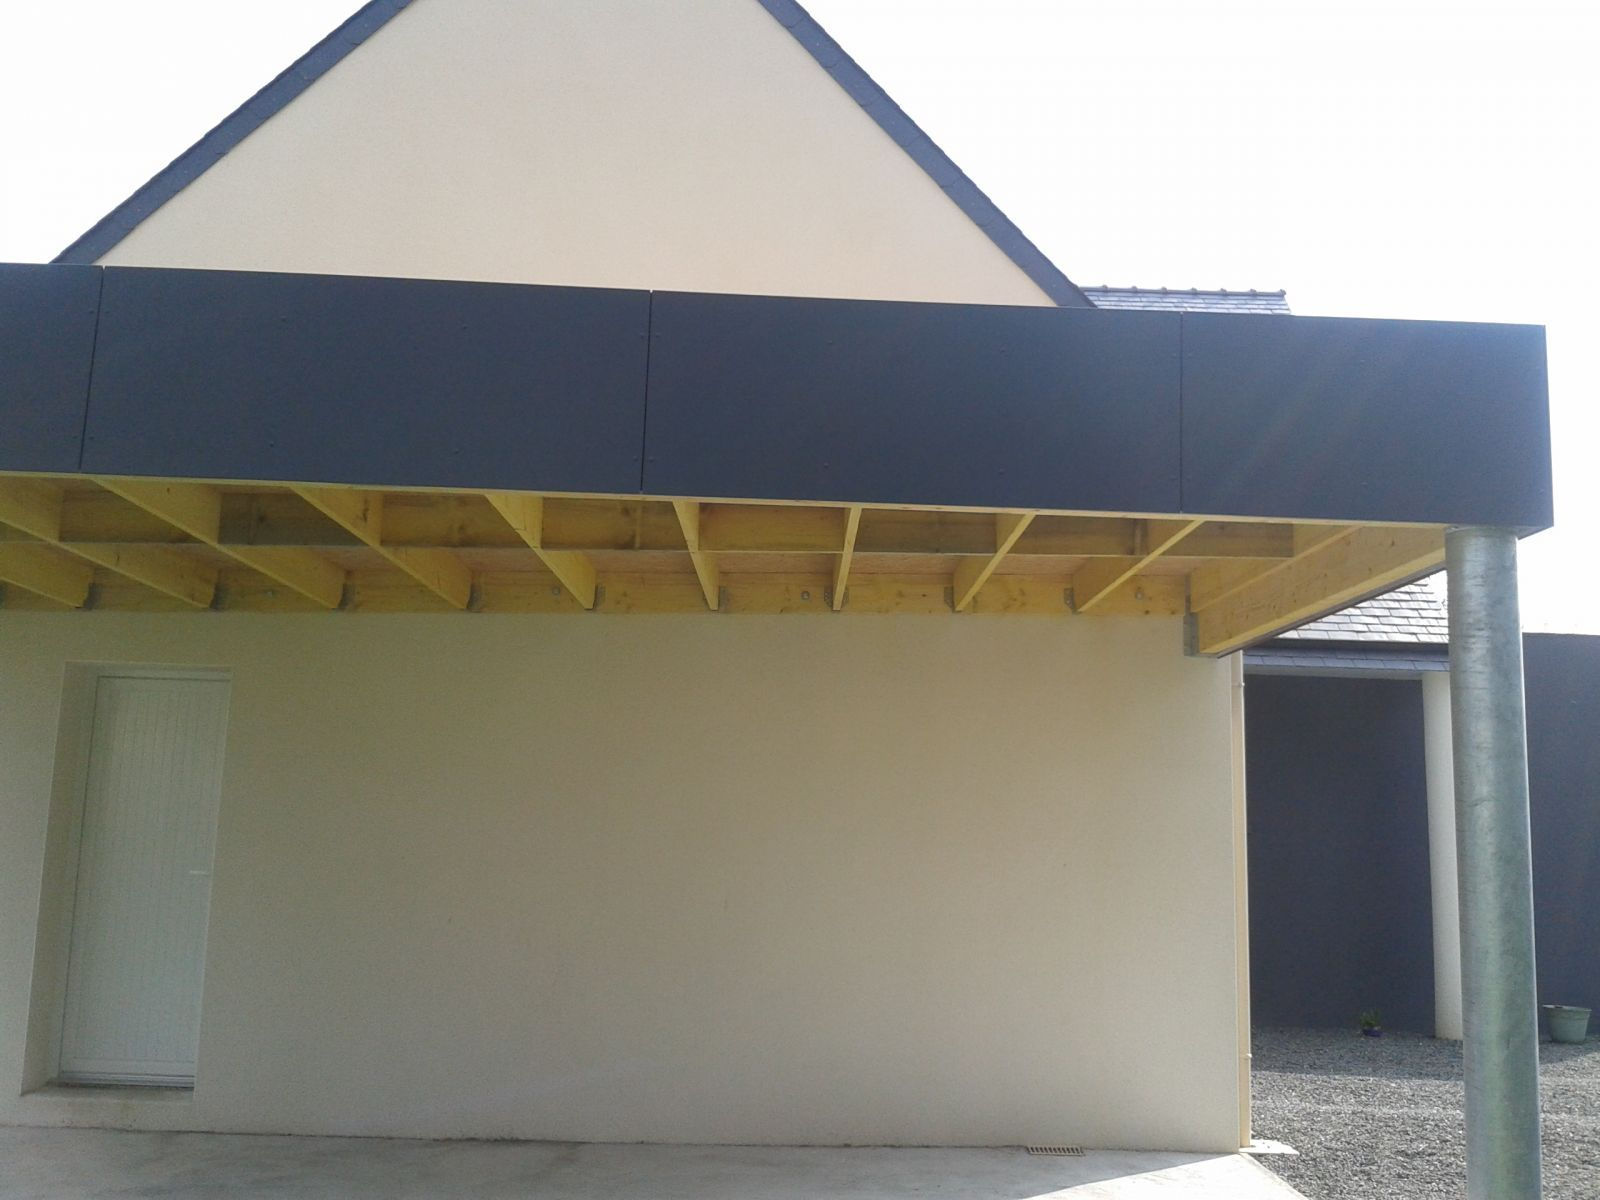 carport avec poteau acier galvanis acrot re en panneau composite et toiture membrane pvc. Black Bedroom Furniture Sets. Home Design Ideas